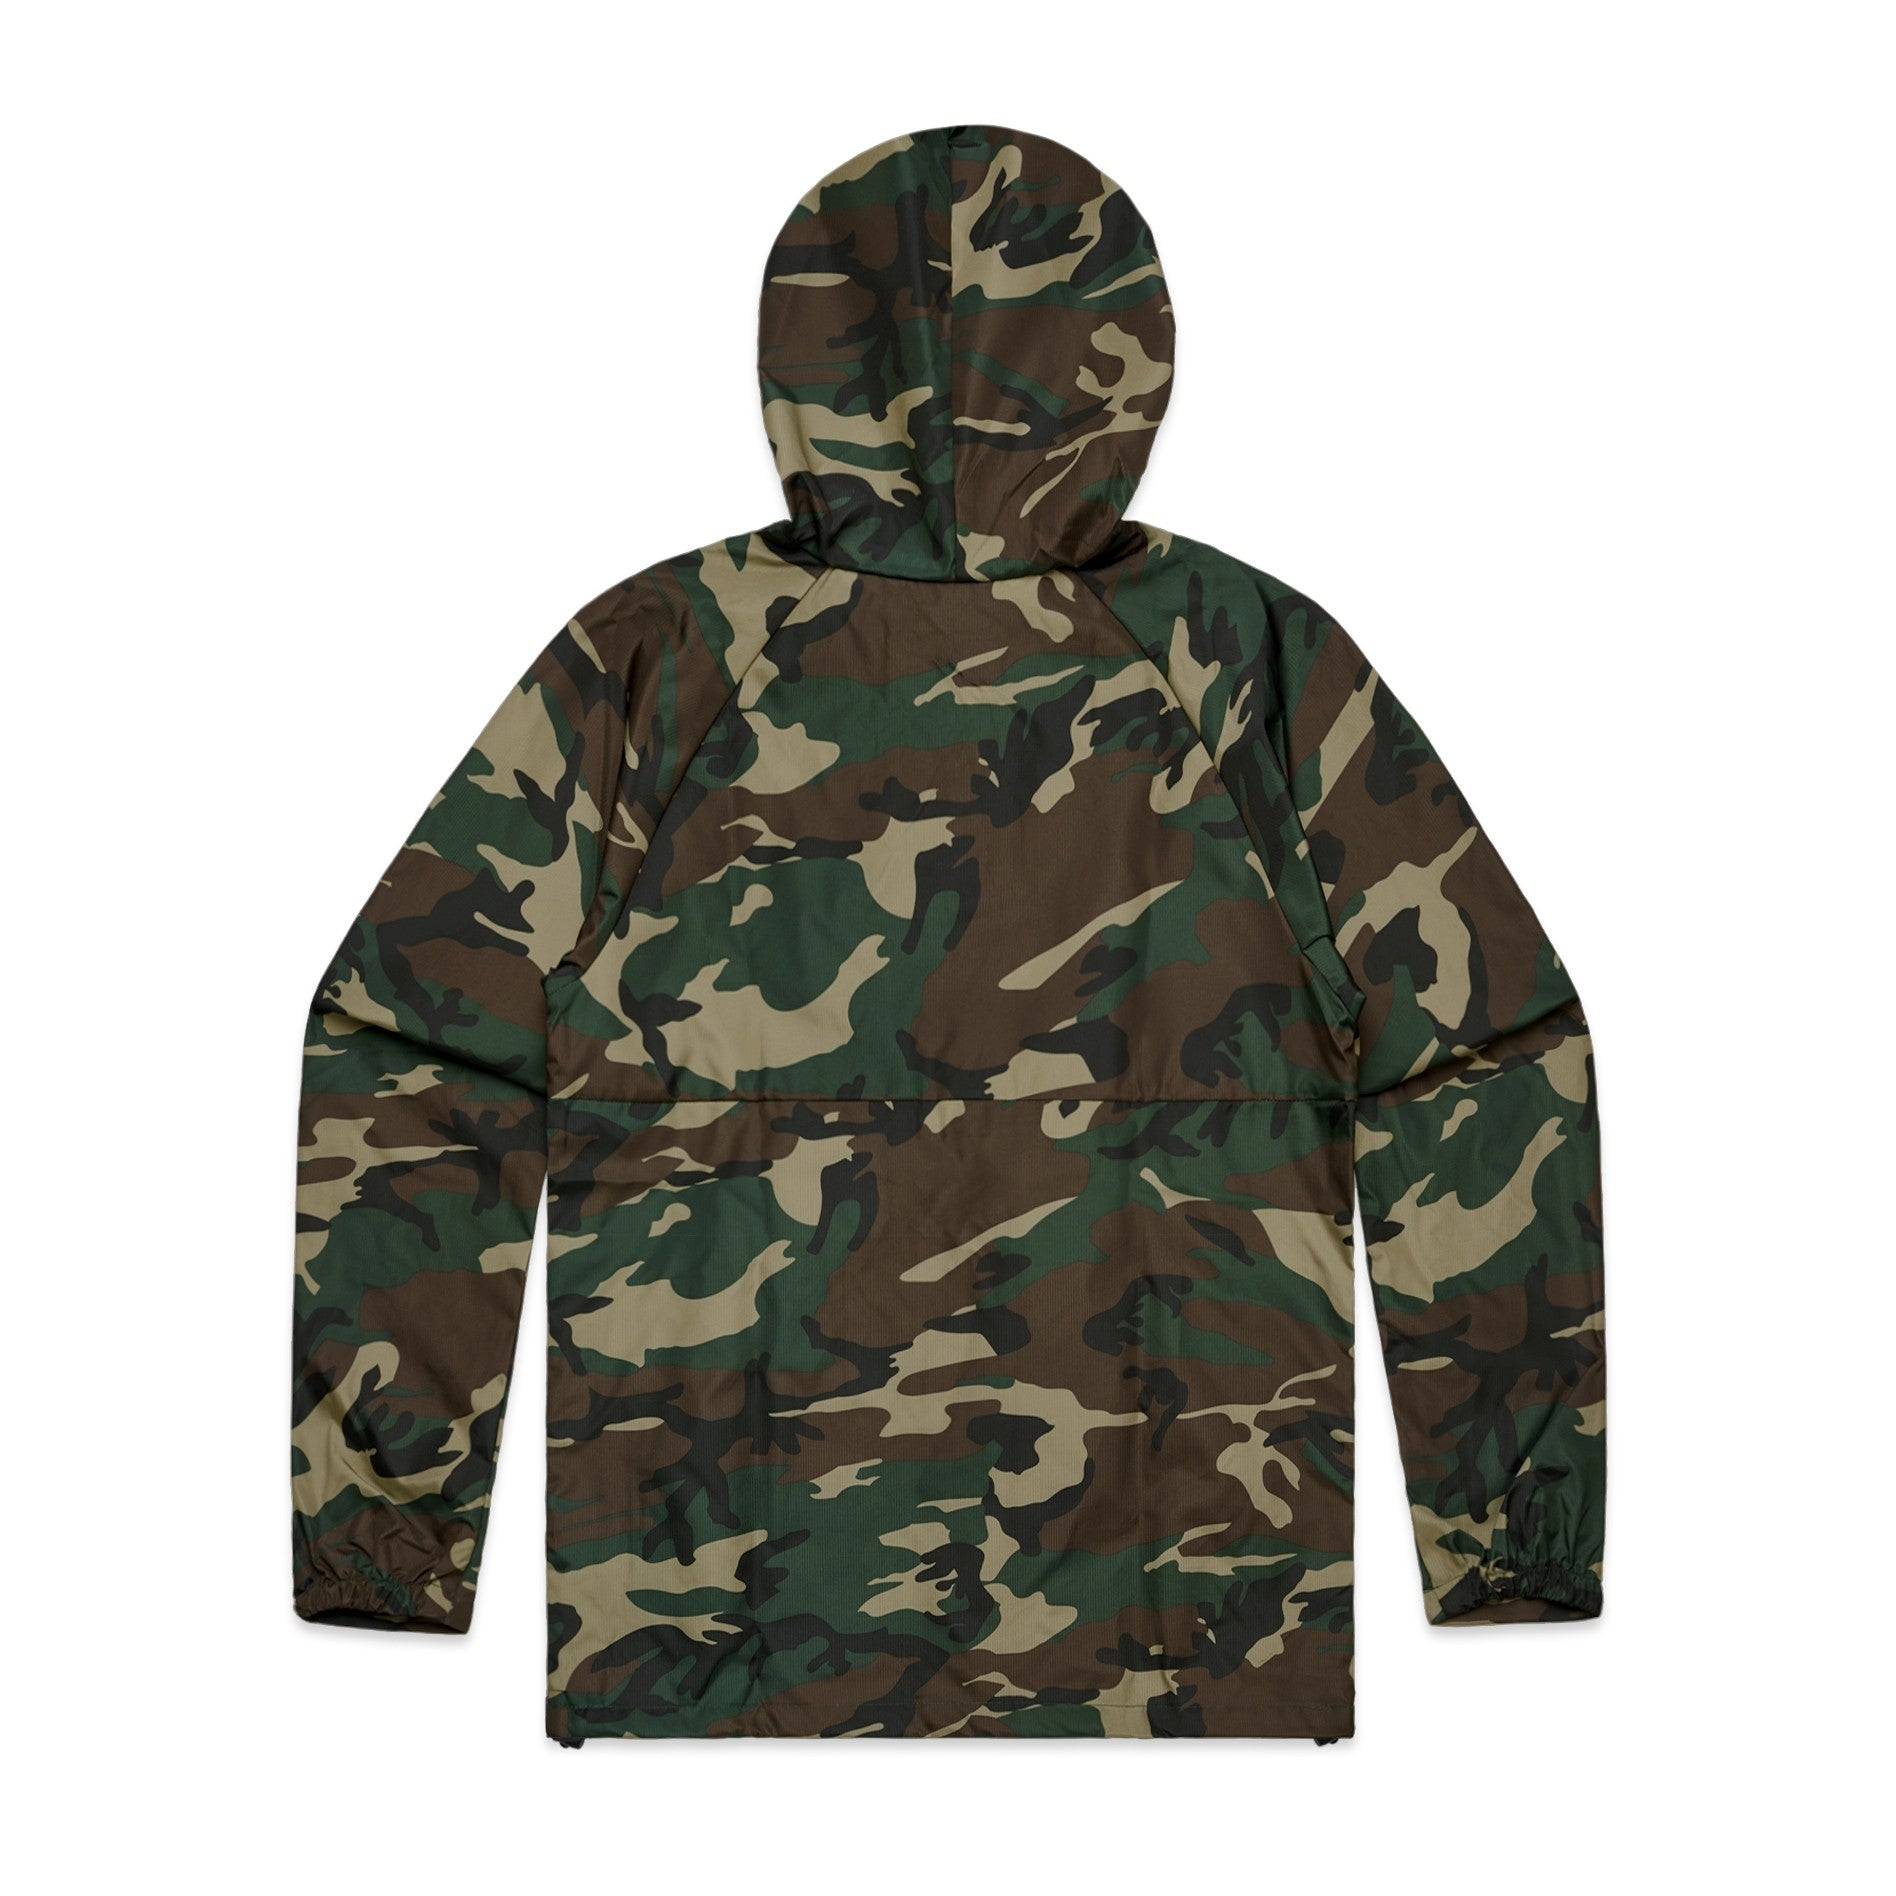 birds-of-condor-camo-windbreaker-golf-hood-jacket-outerwear-front